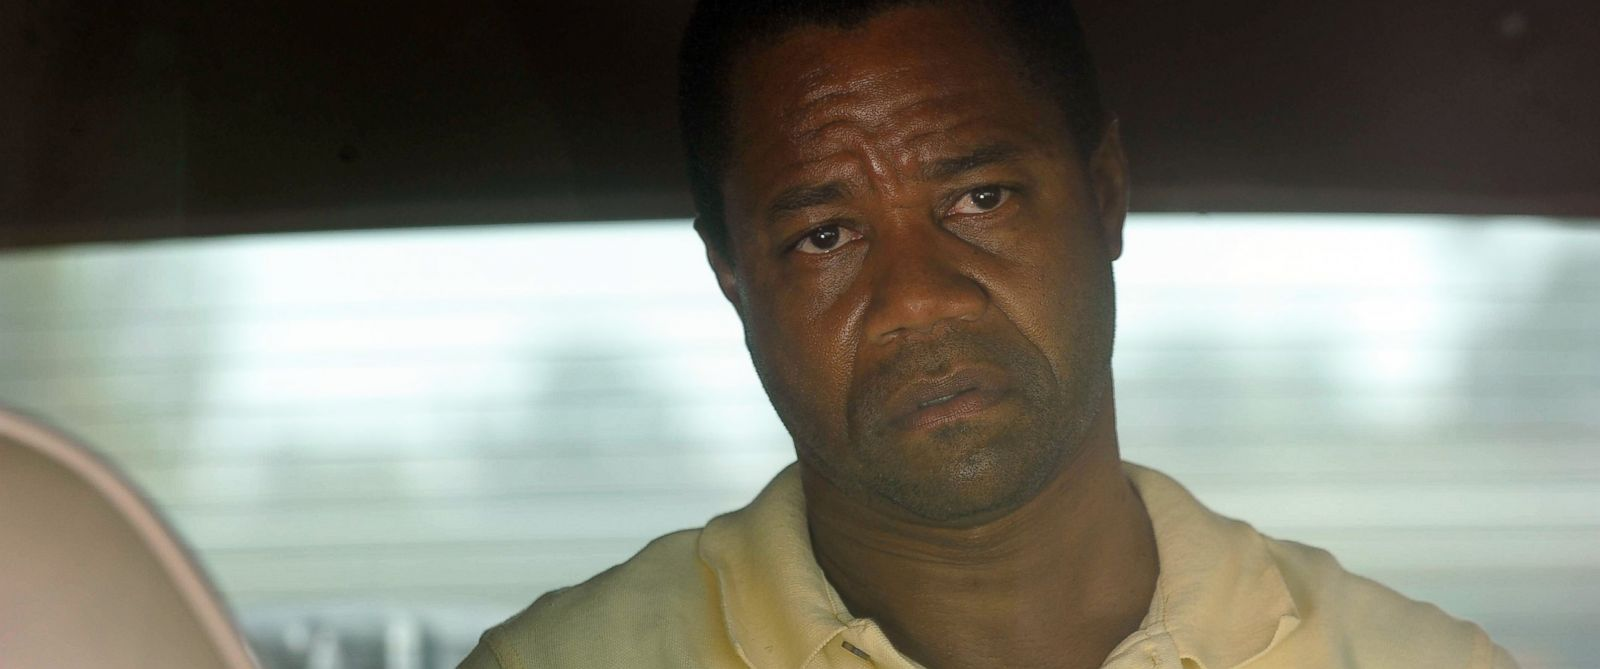 "PHOTO: Cuba Gooding, Jr. as O.J. Simpson in ""THE PEOPLE v. O.J. SIMPSON: American Crime Story."""